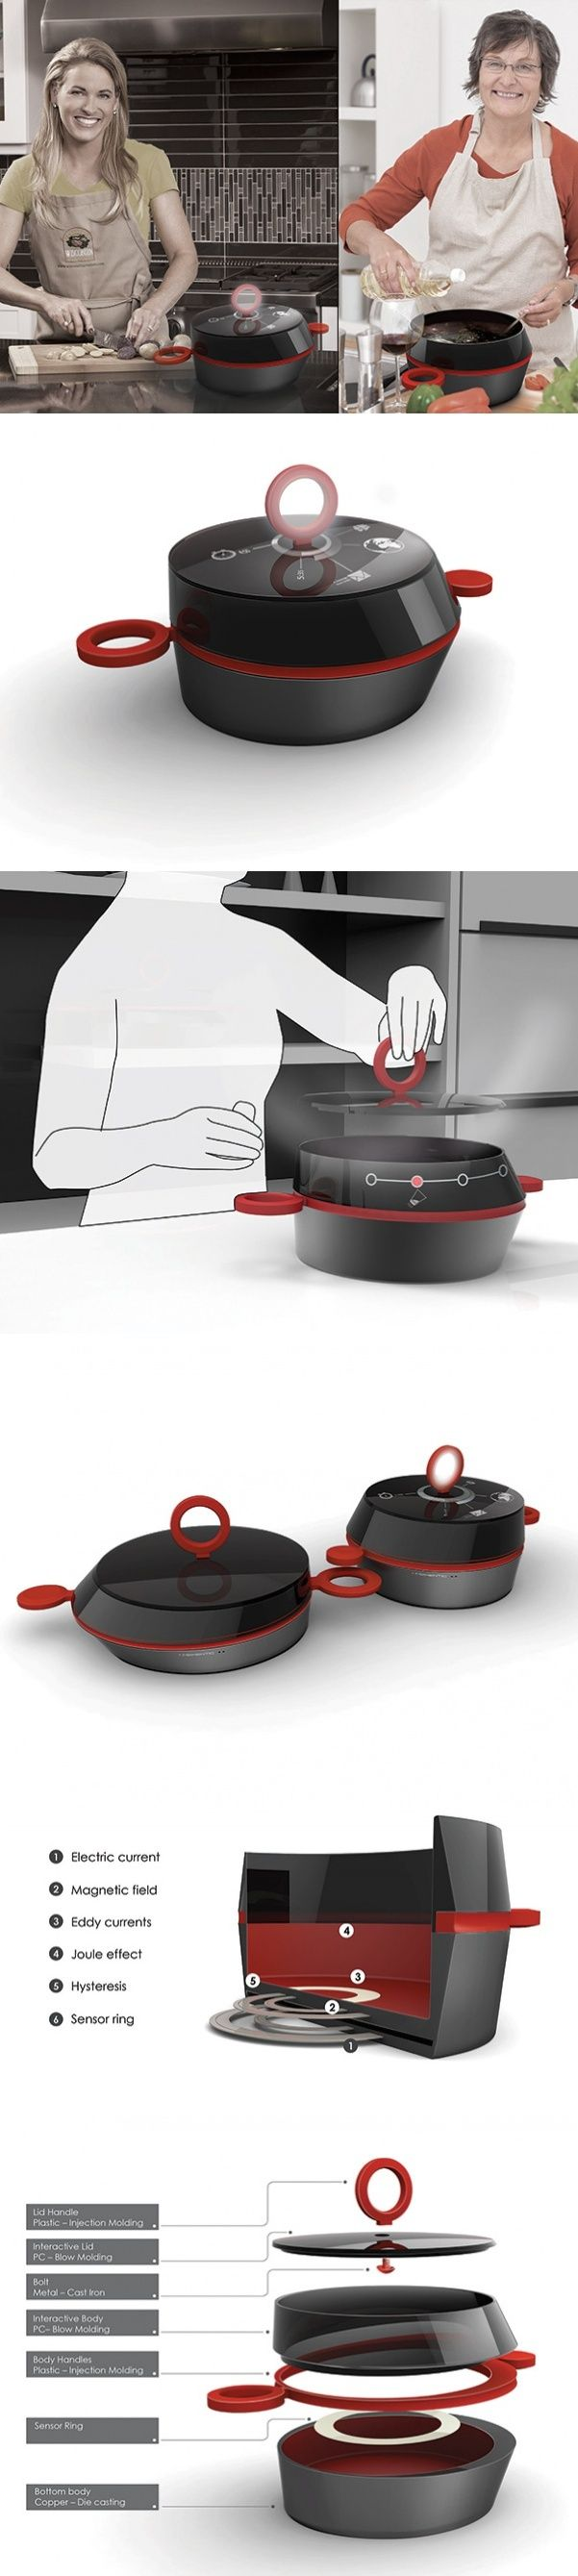 The #MeMeNtiC Connected #Pot merges traditional #cookware with #modern #tech in an aim to bring people back together in the #kitchen. #Yankodesign